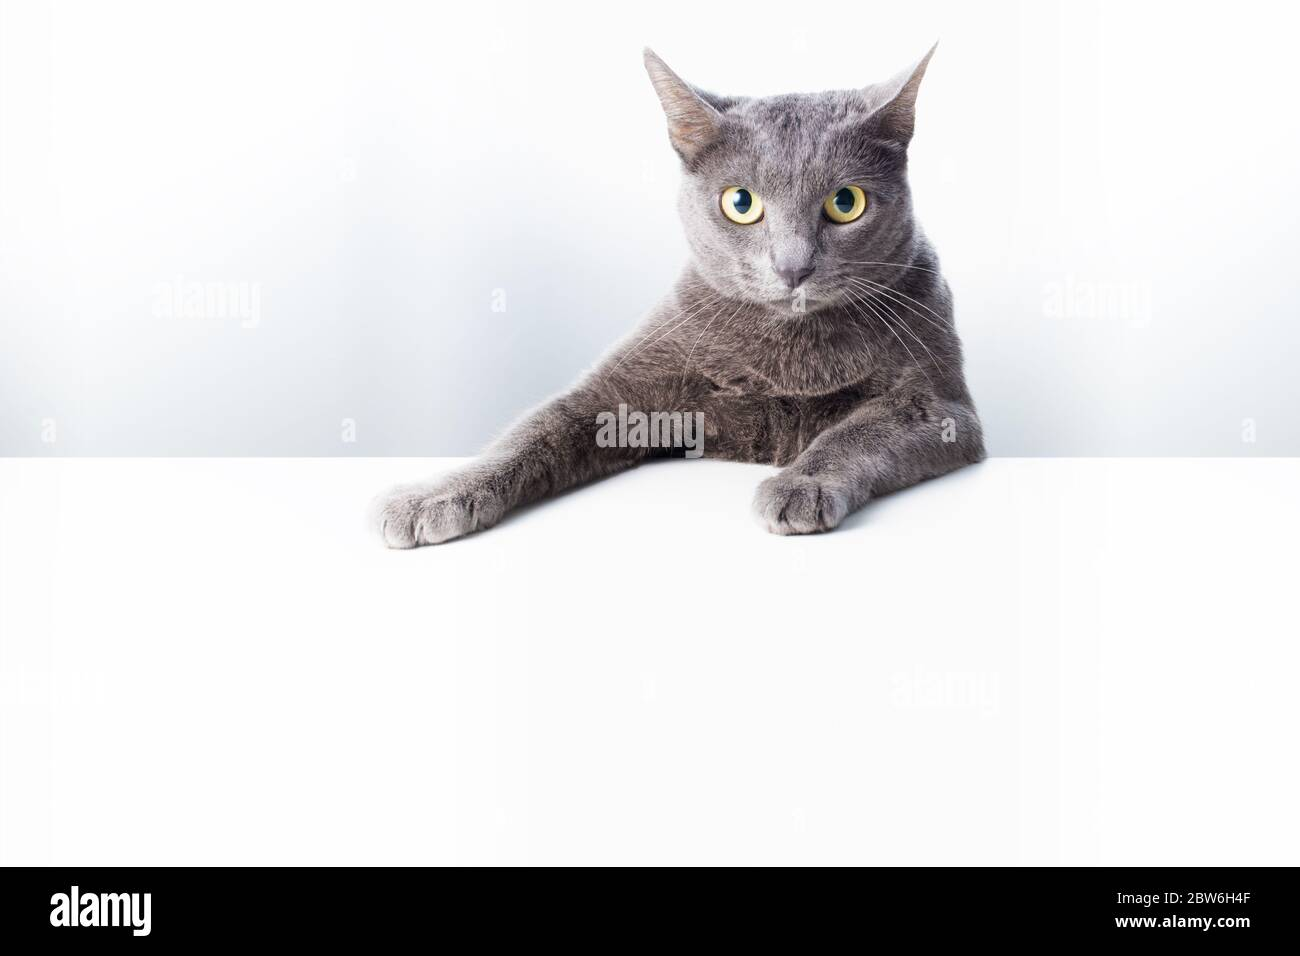 The expression and gesture of a Russian blue cat that can be used as a banner. a cat portrait. Stock Photo